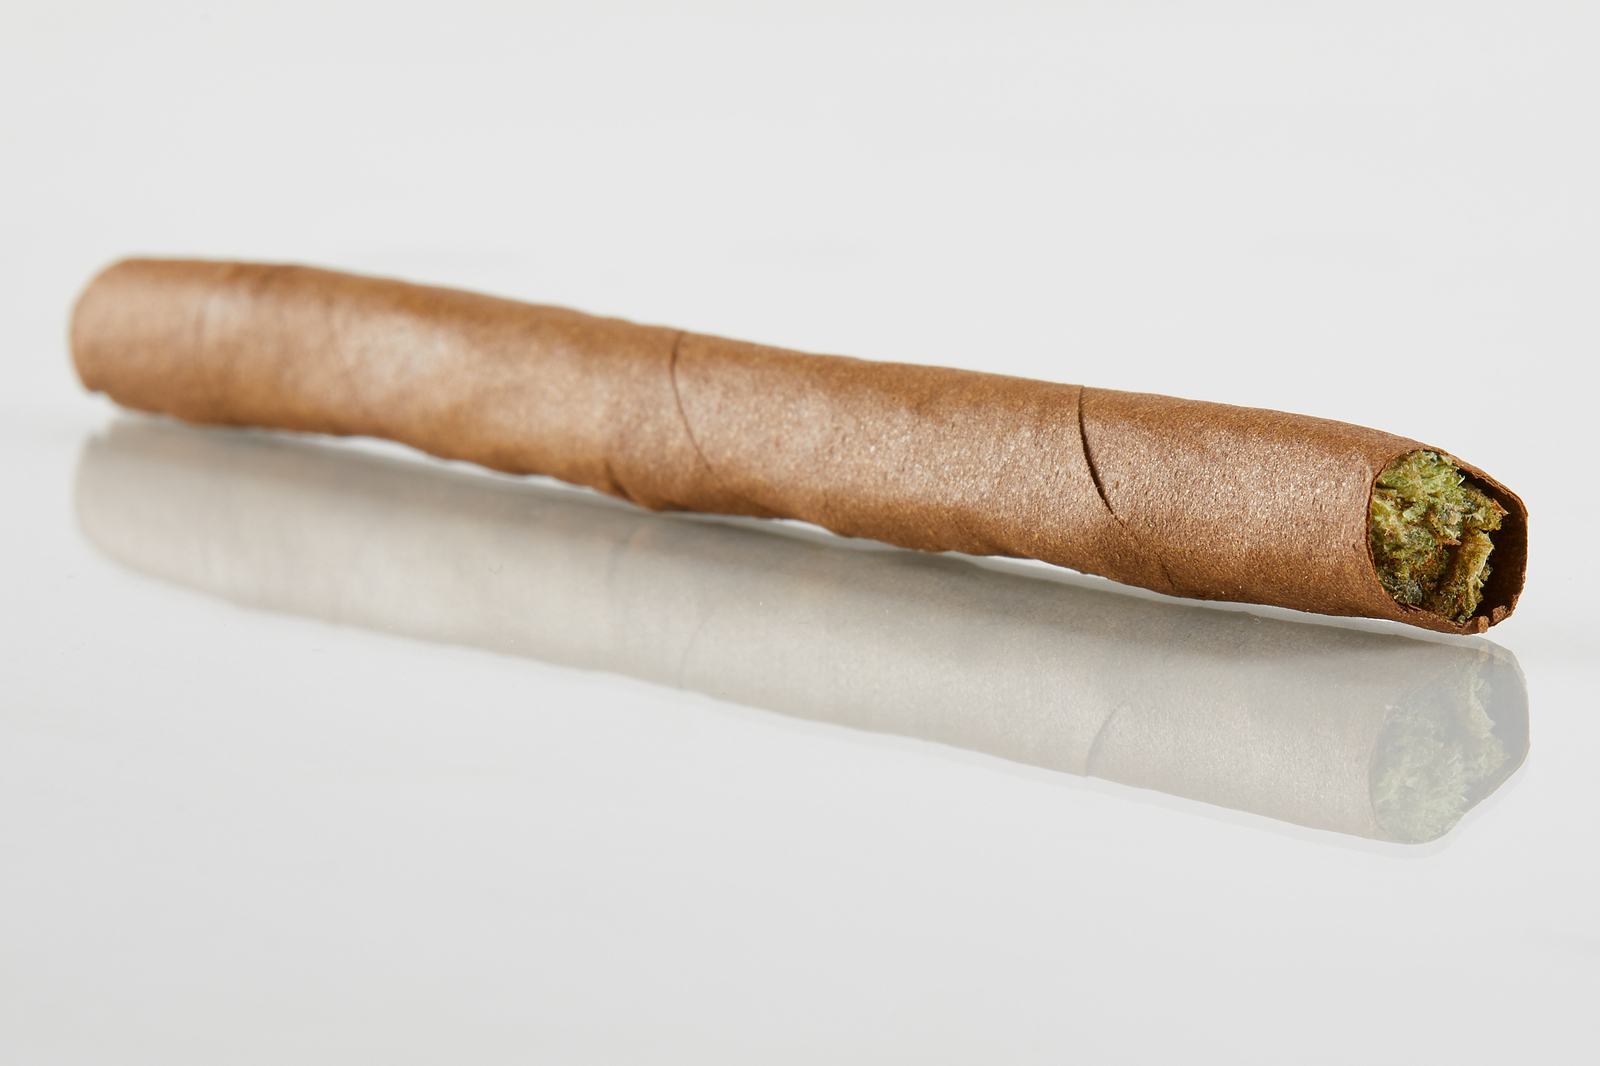 Rolled up blunt